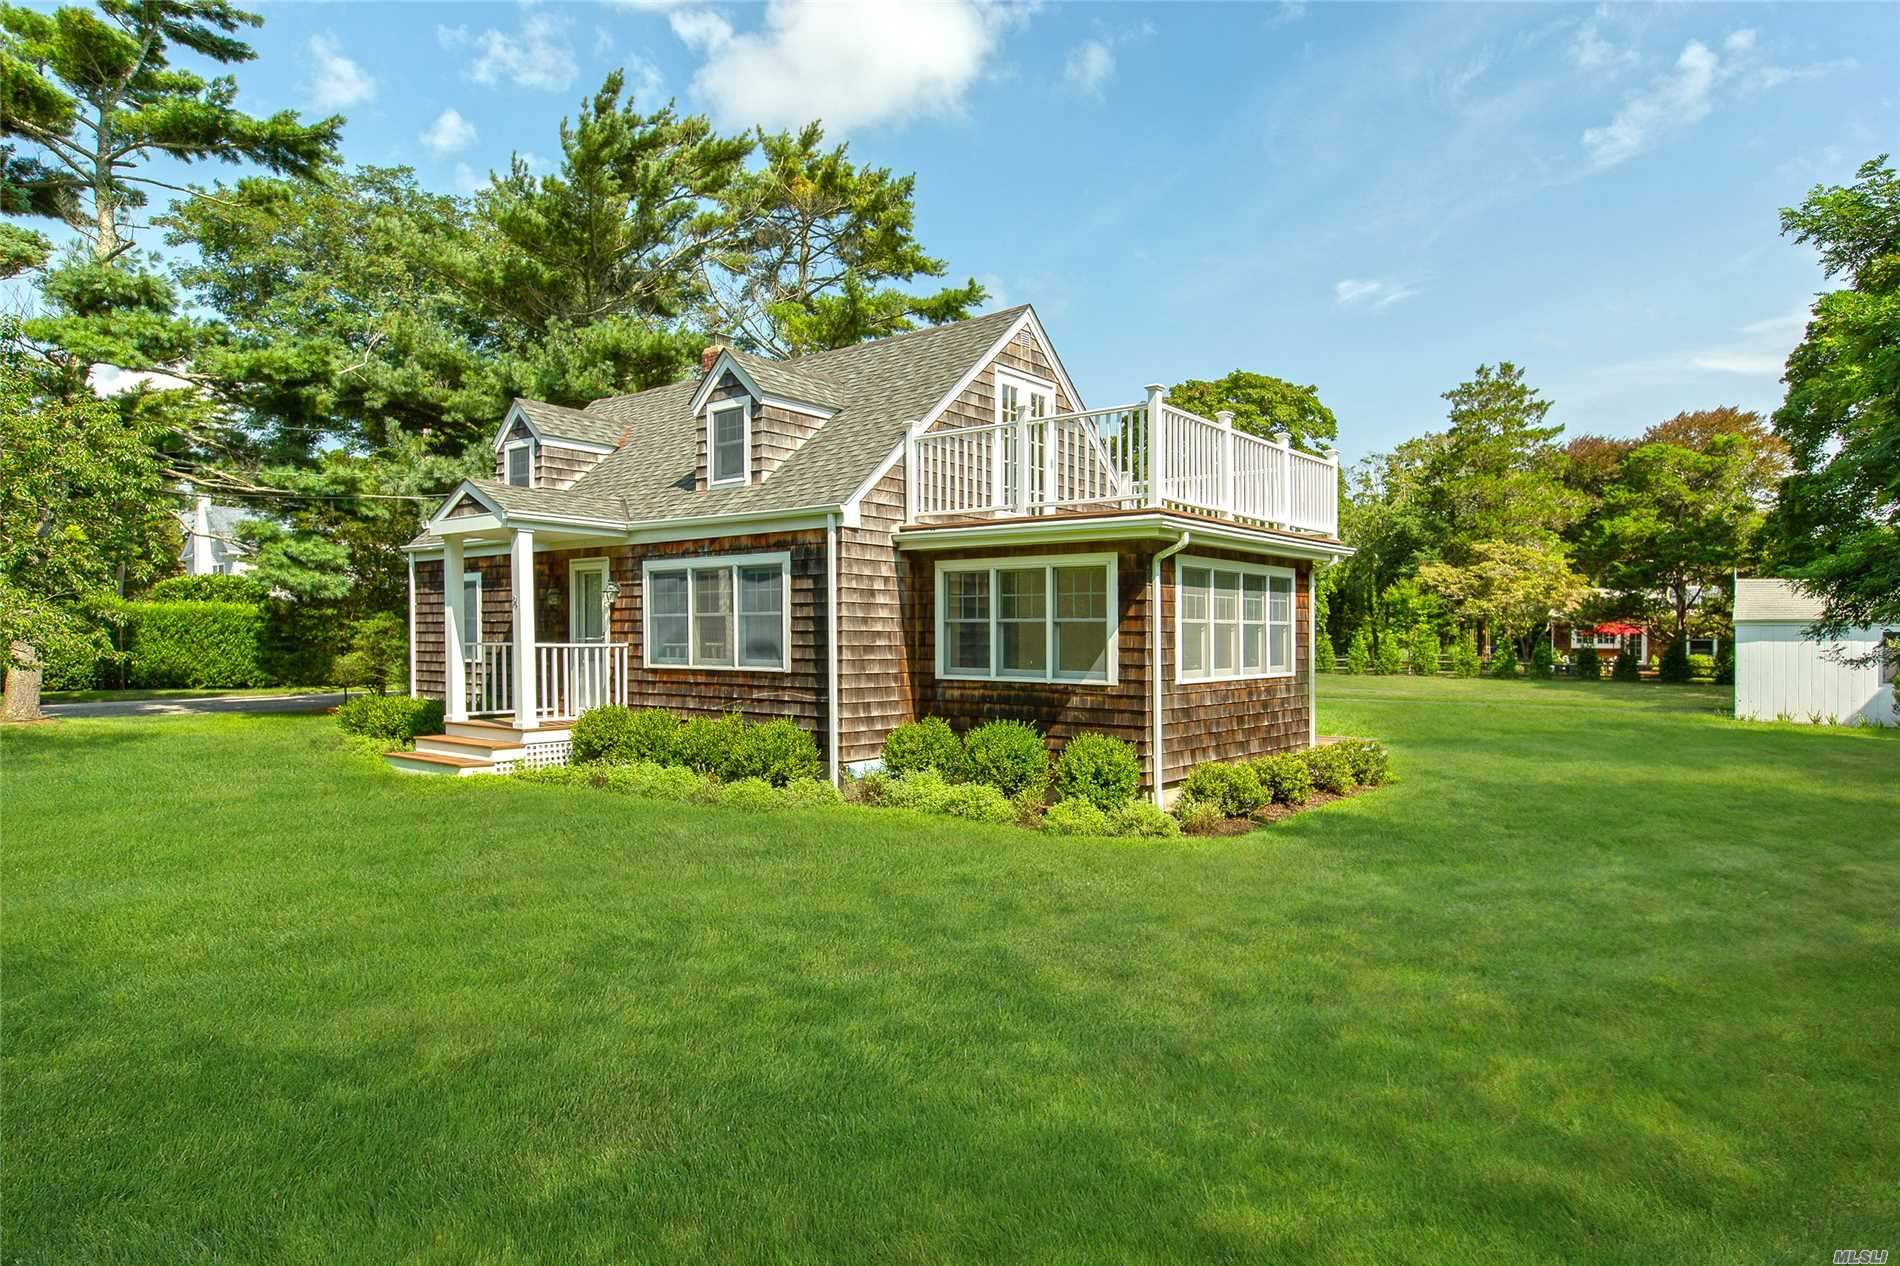 Photo of home for sale at 31 Walker Ave, East Quogue NY